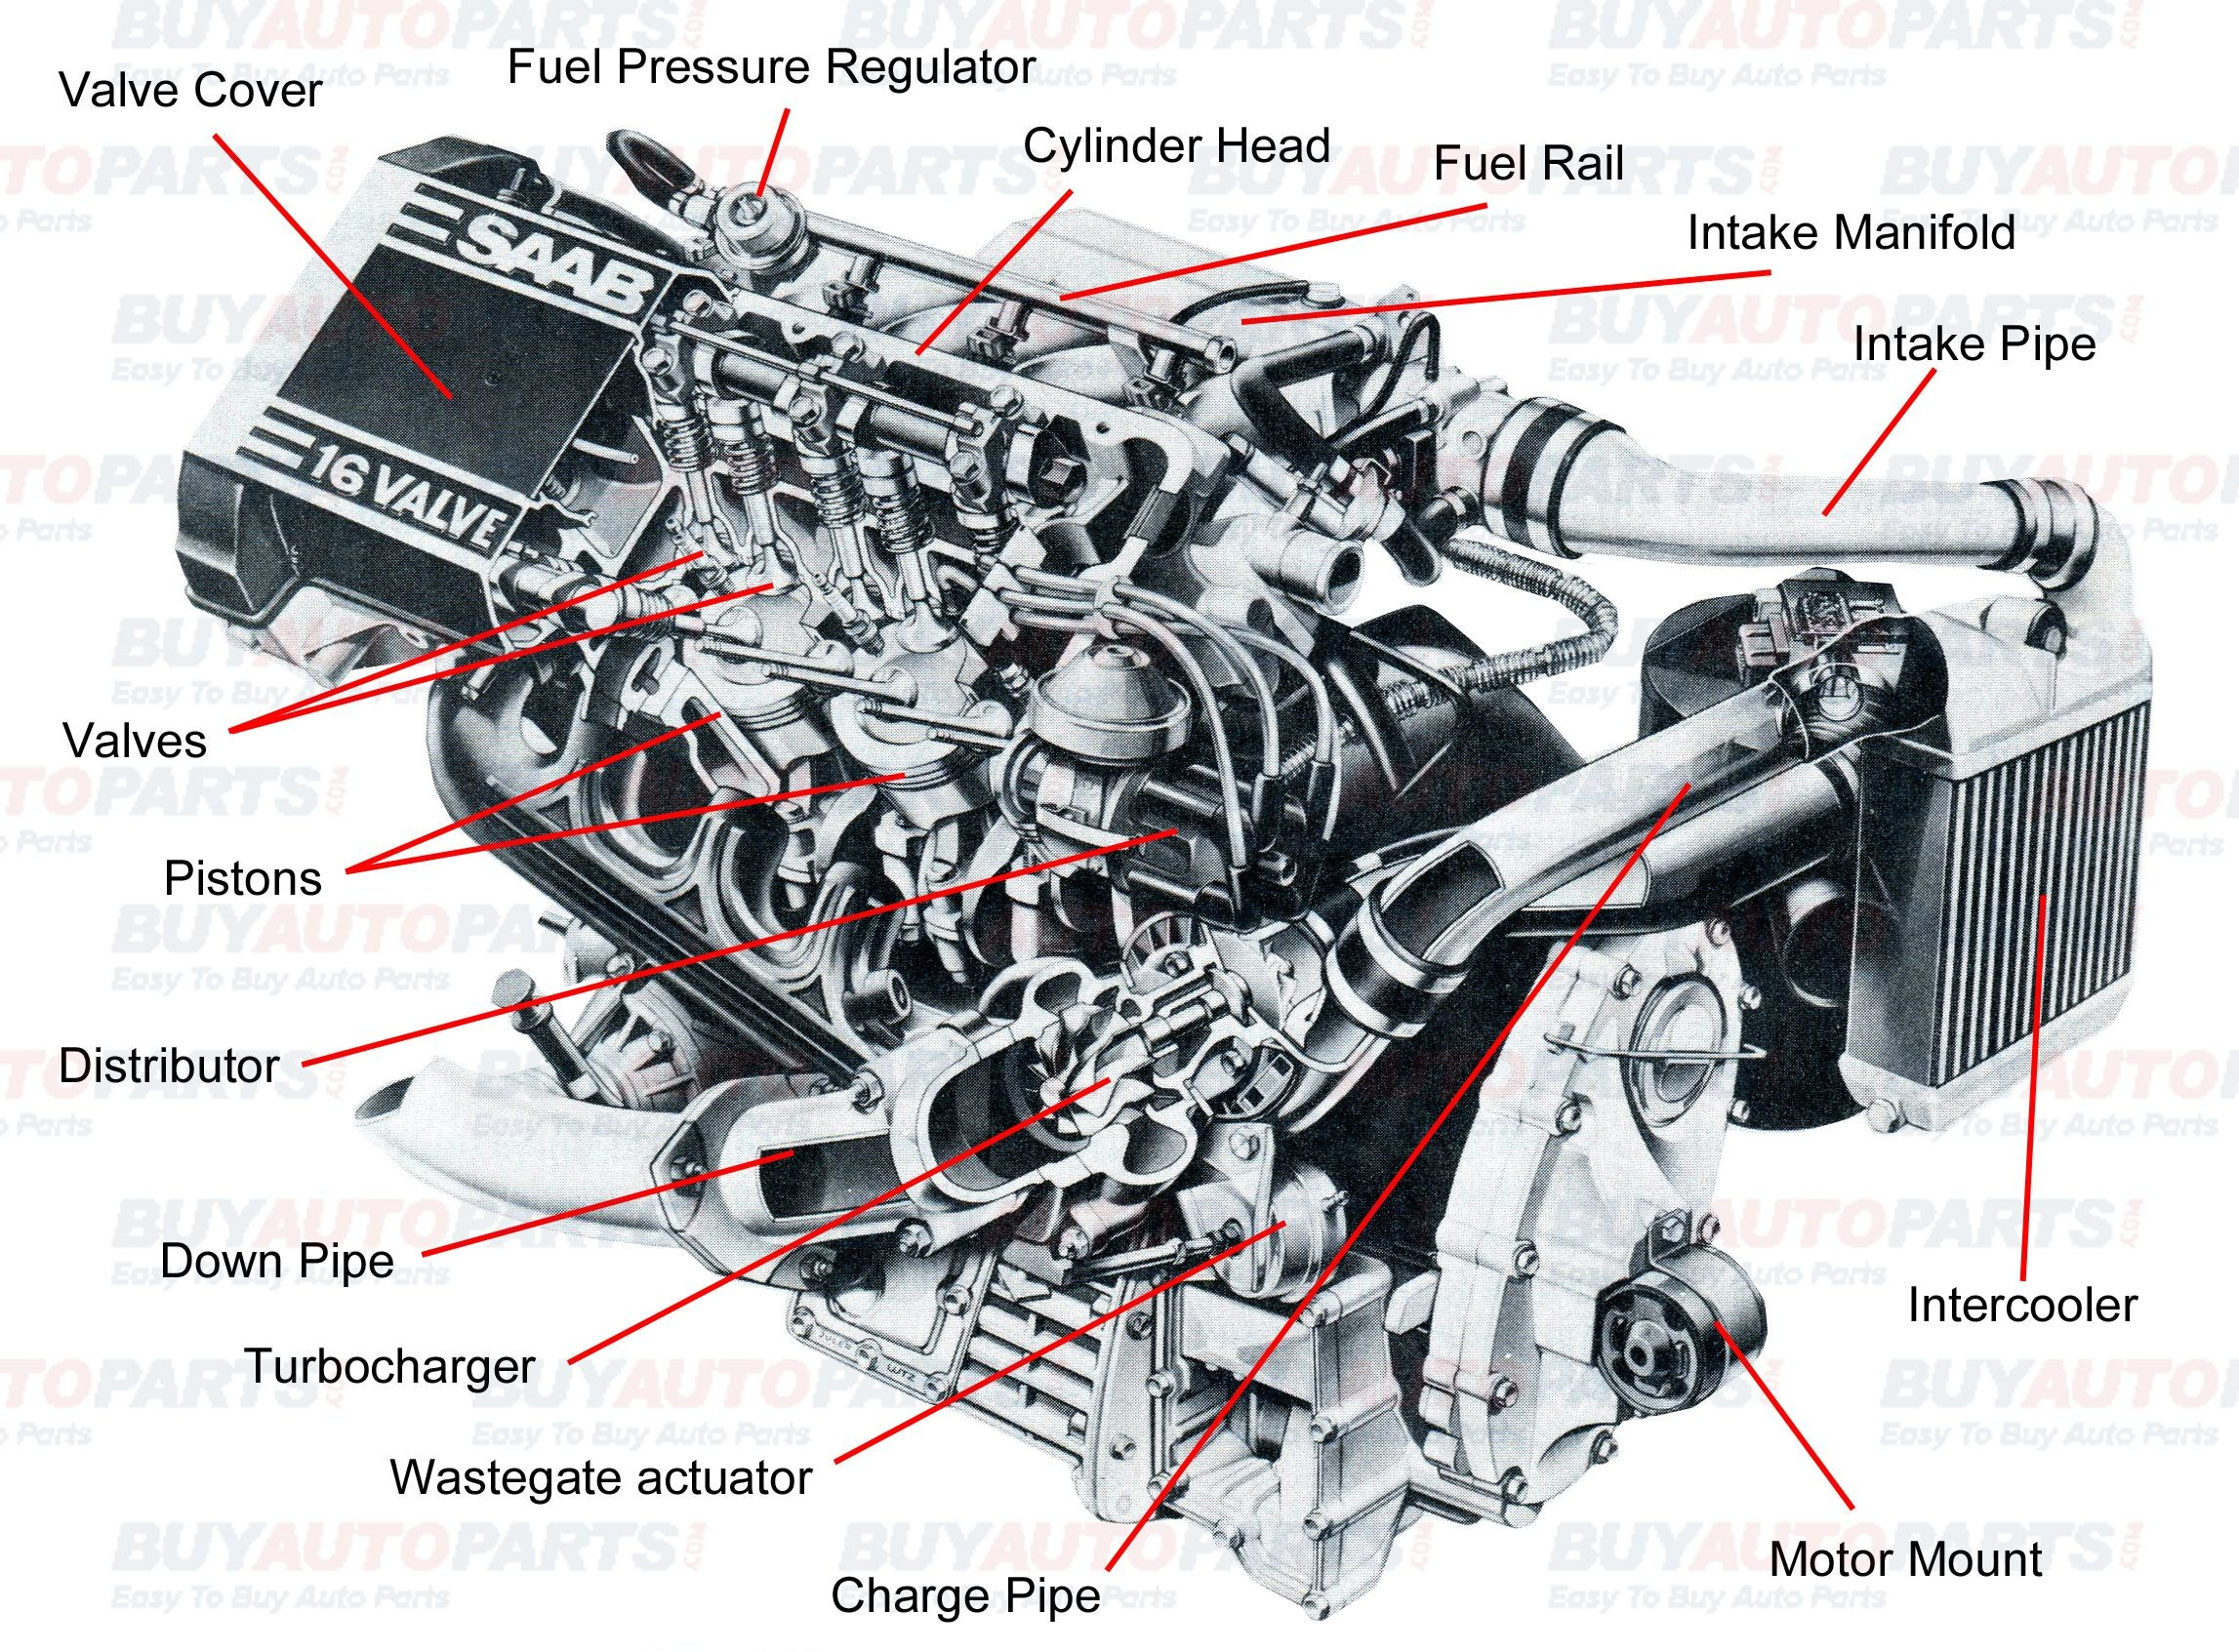 Suspension Diagram Car Pin by Jimmiejanet Testellamwfz On What Does An Engine with Turbo Of Suspension Diagram Car